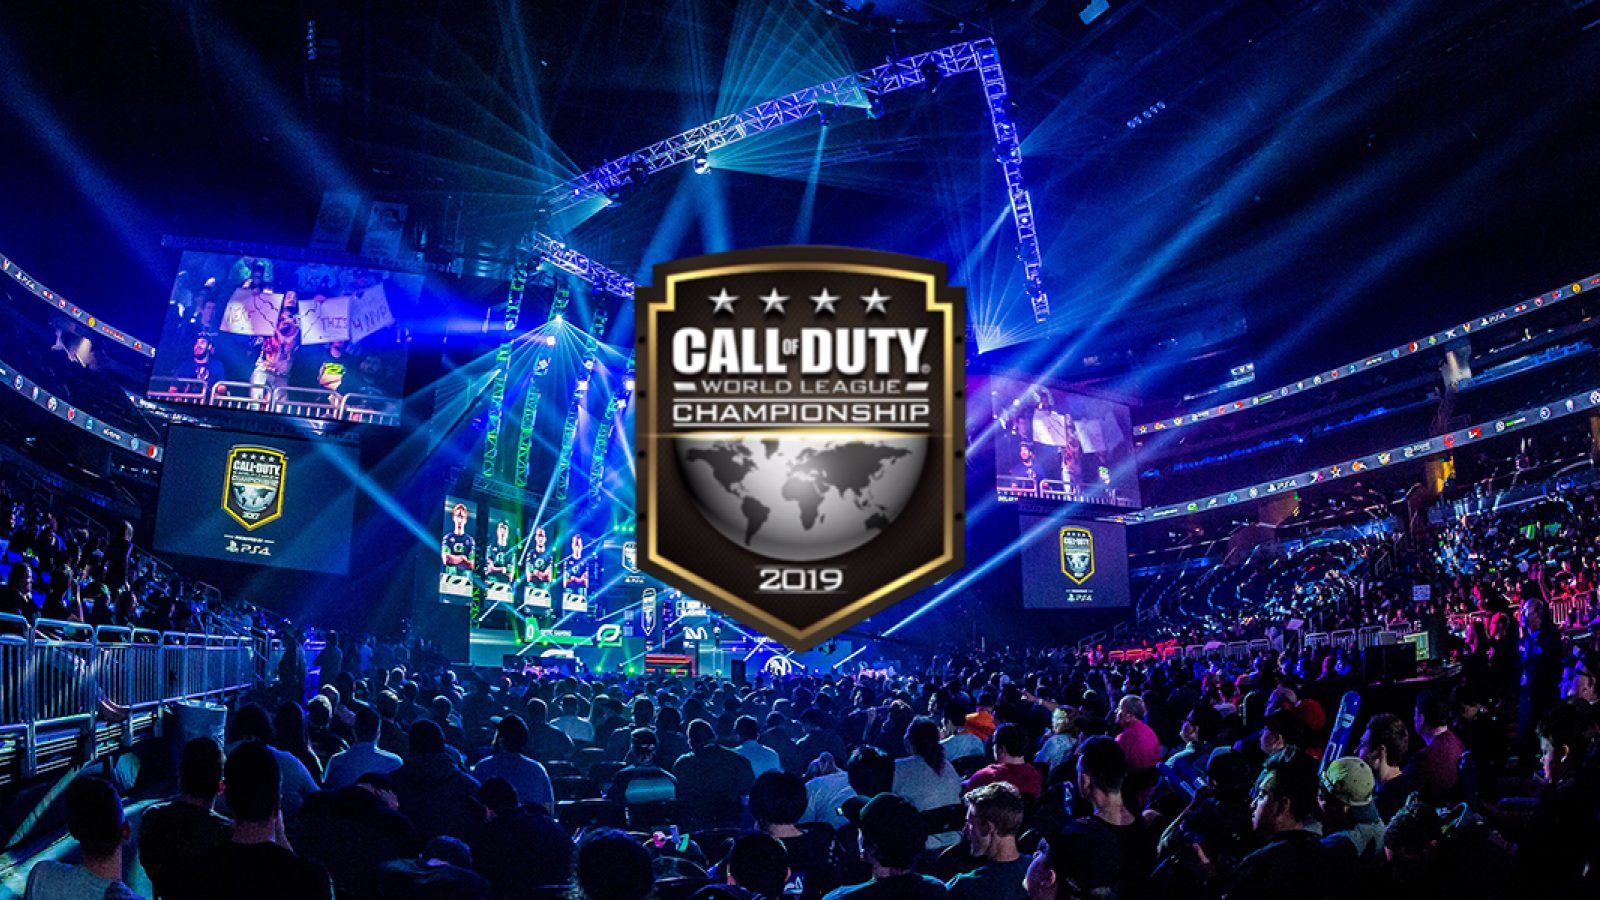 Call of duty world league championship CWL Champs